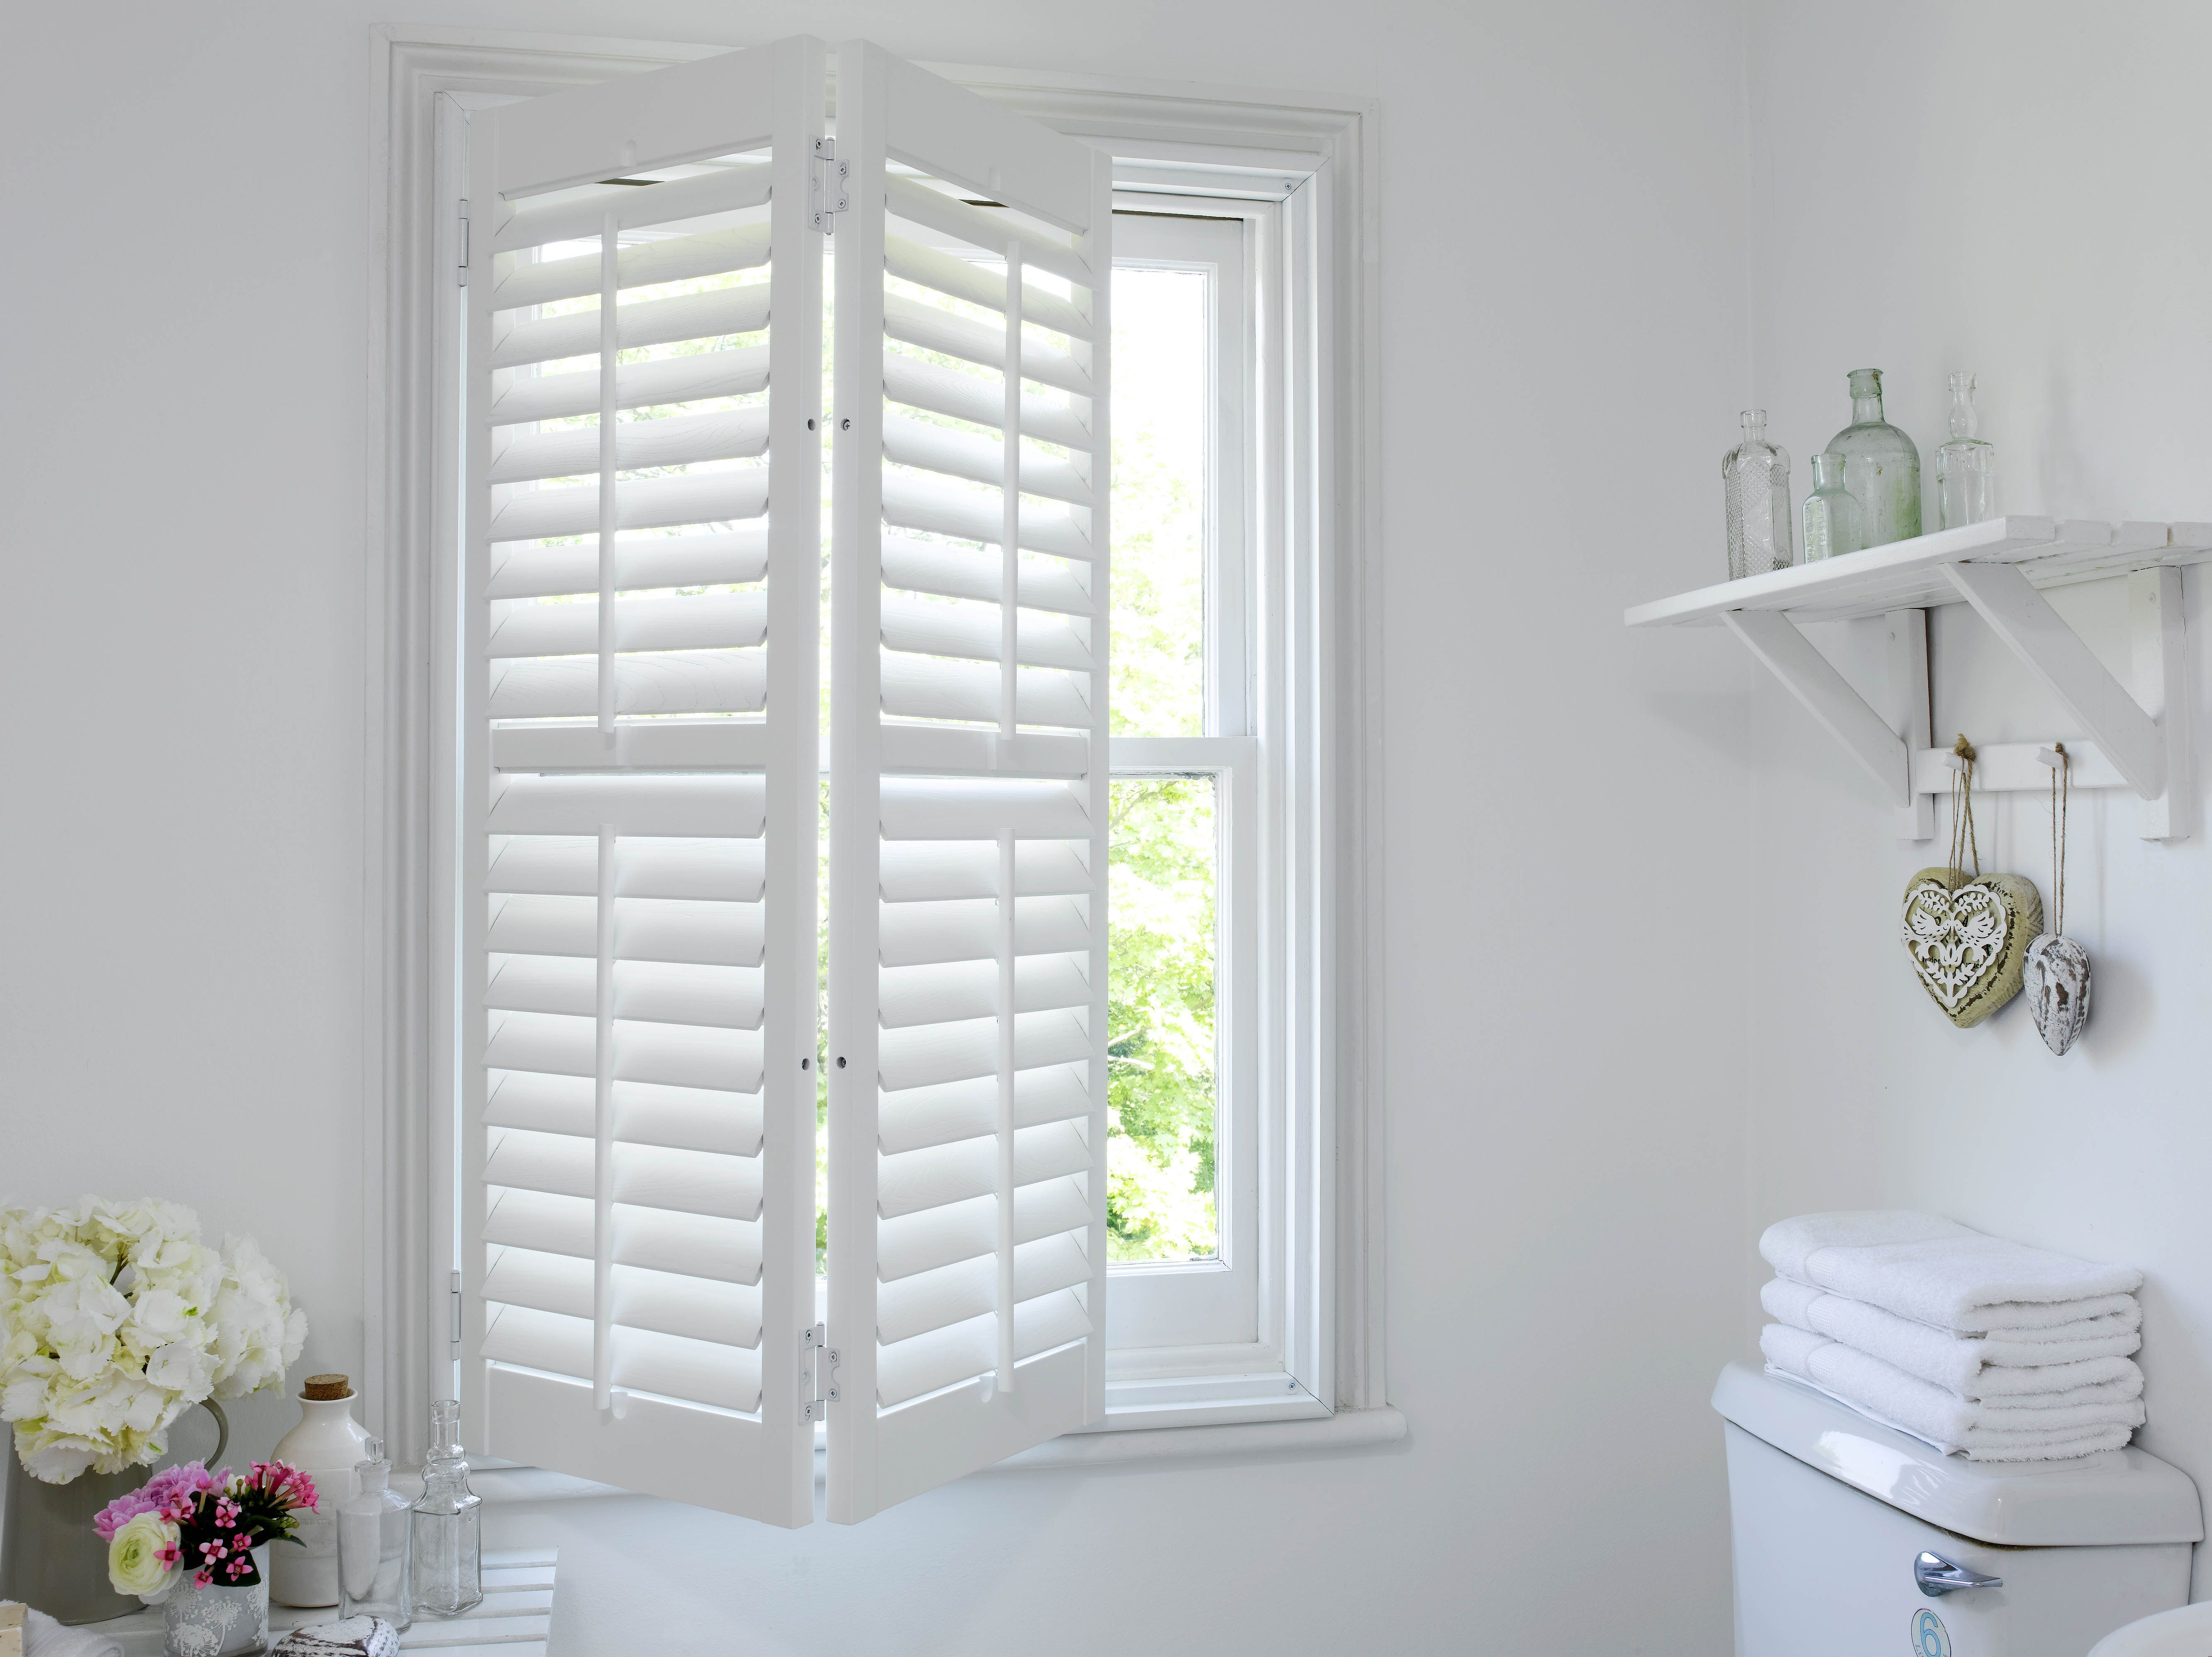 curtain hardware blinds black supply wood venetain with home cafe drapery t styles ft rod cleaning inspirations tapes white